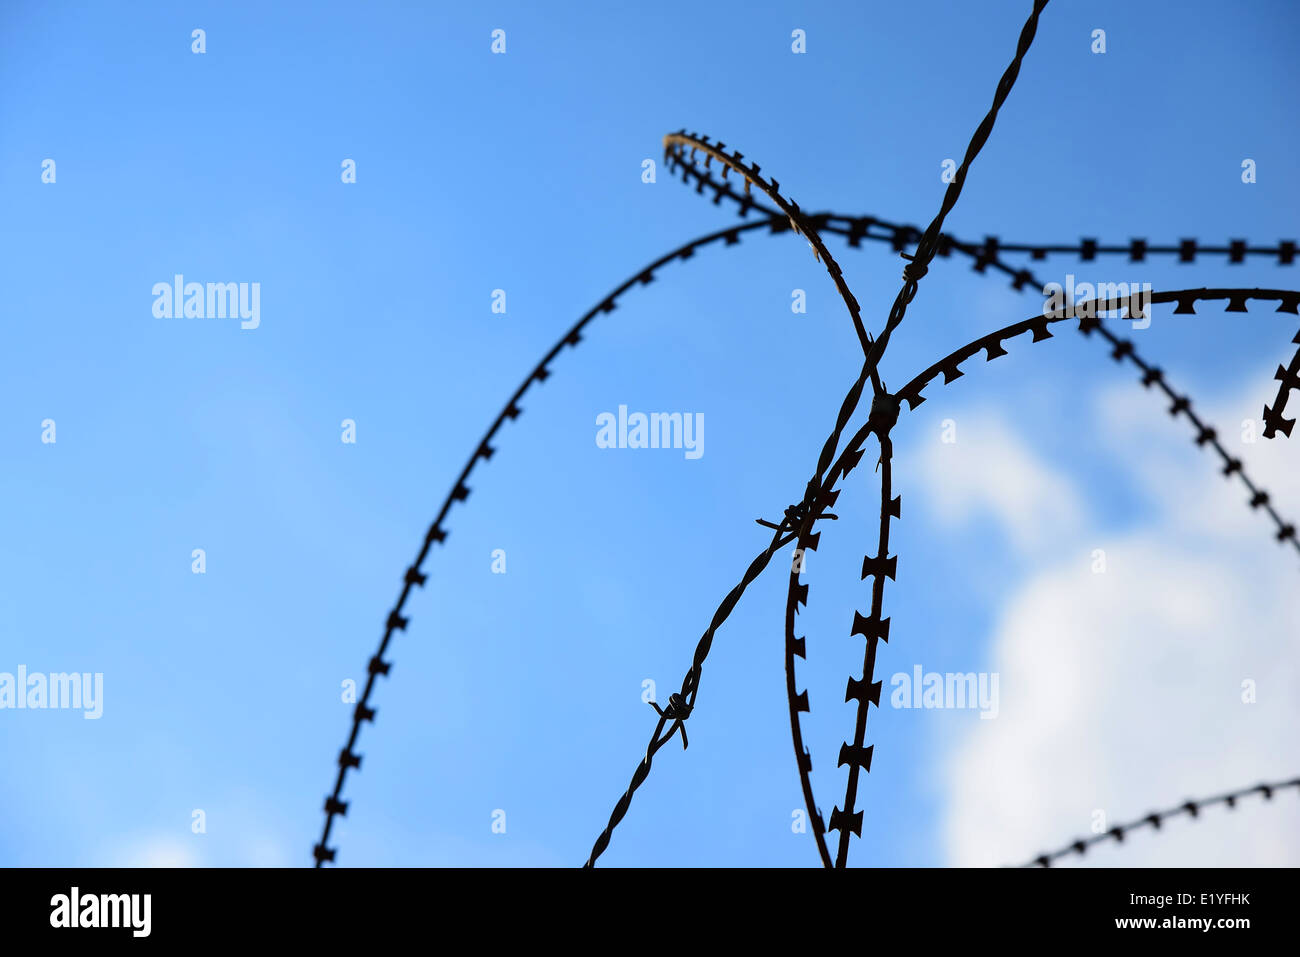 wire fence on a background of clear blue sky - Stock Image